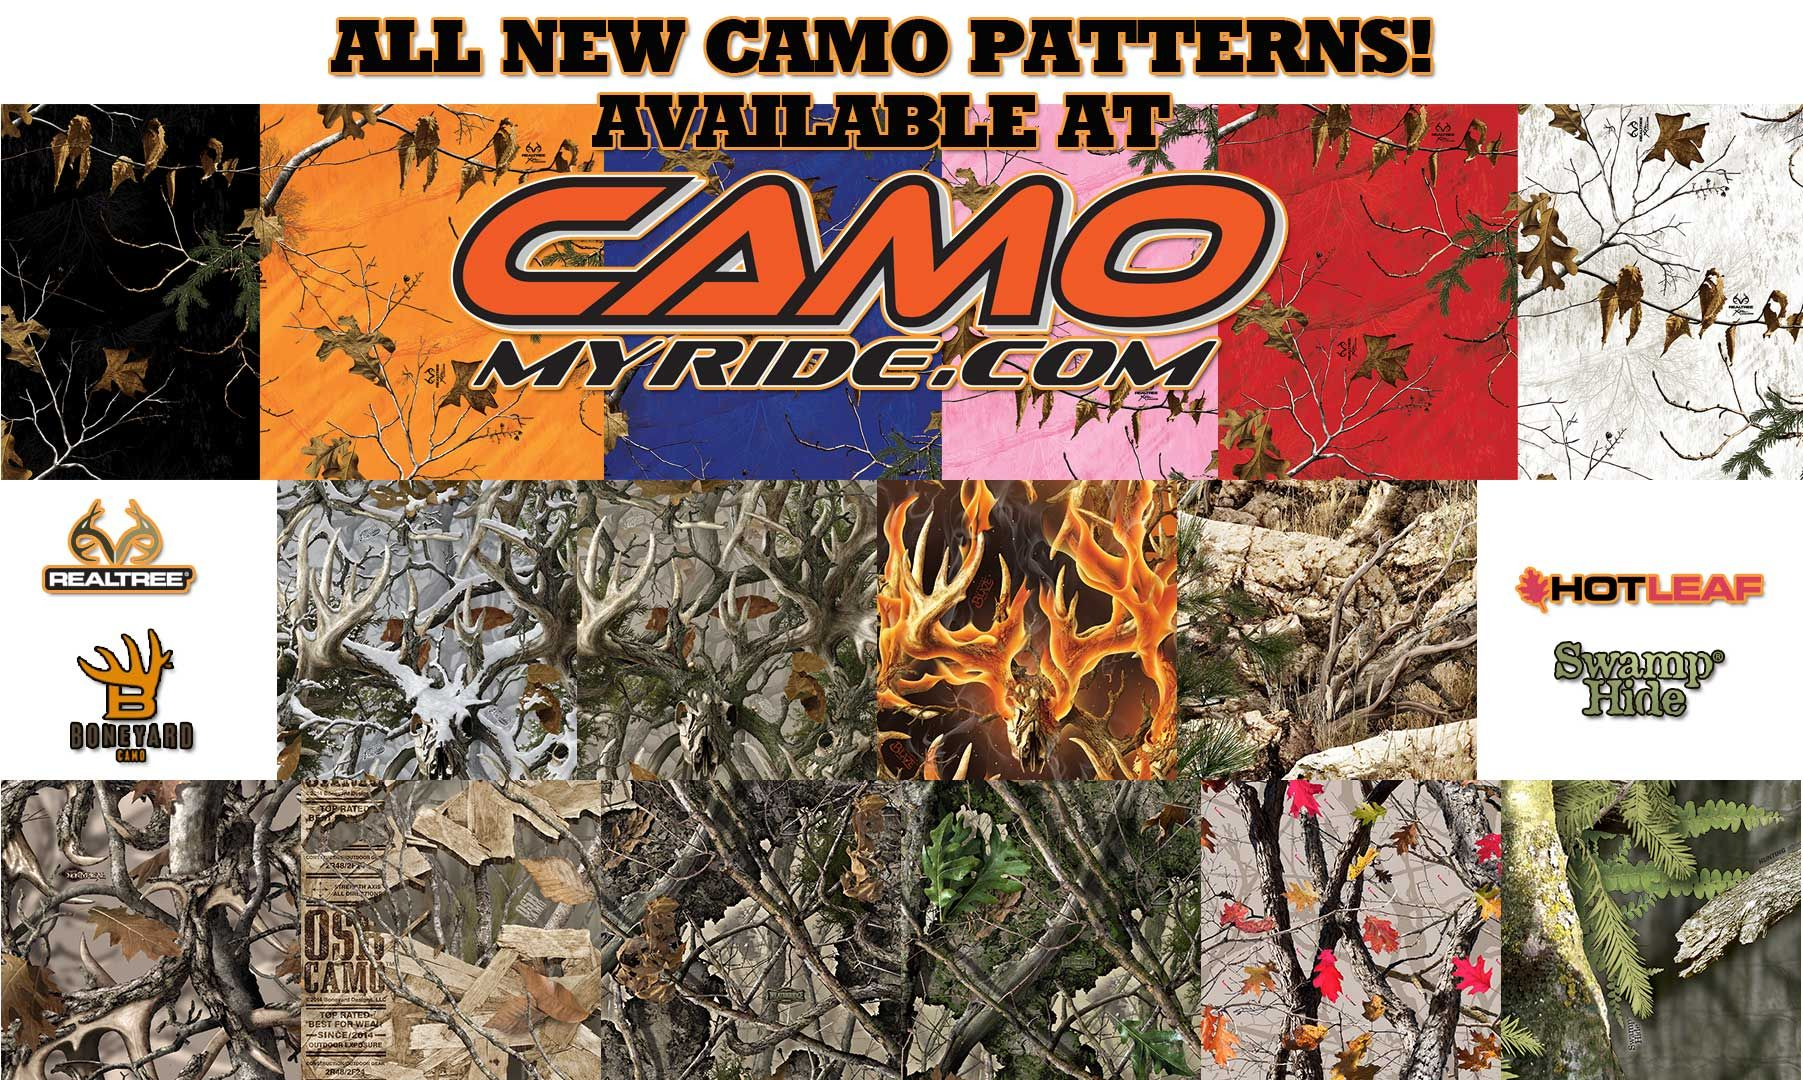 16 New Camo Patterns Realtree Swamphide Boneyard Hotleaf Get Them Now At Www Camomyride Com Camomyride With Images Camo Truck Camo Patterns Boat Kits